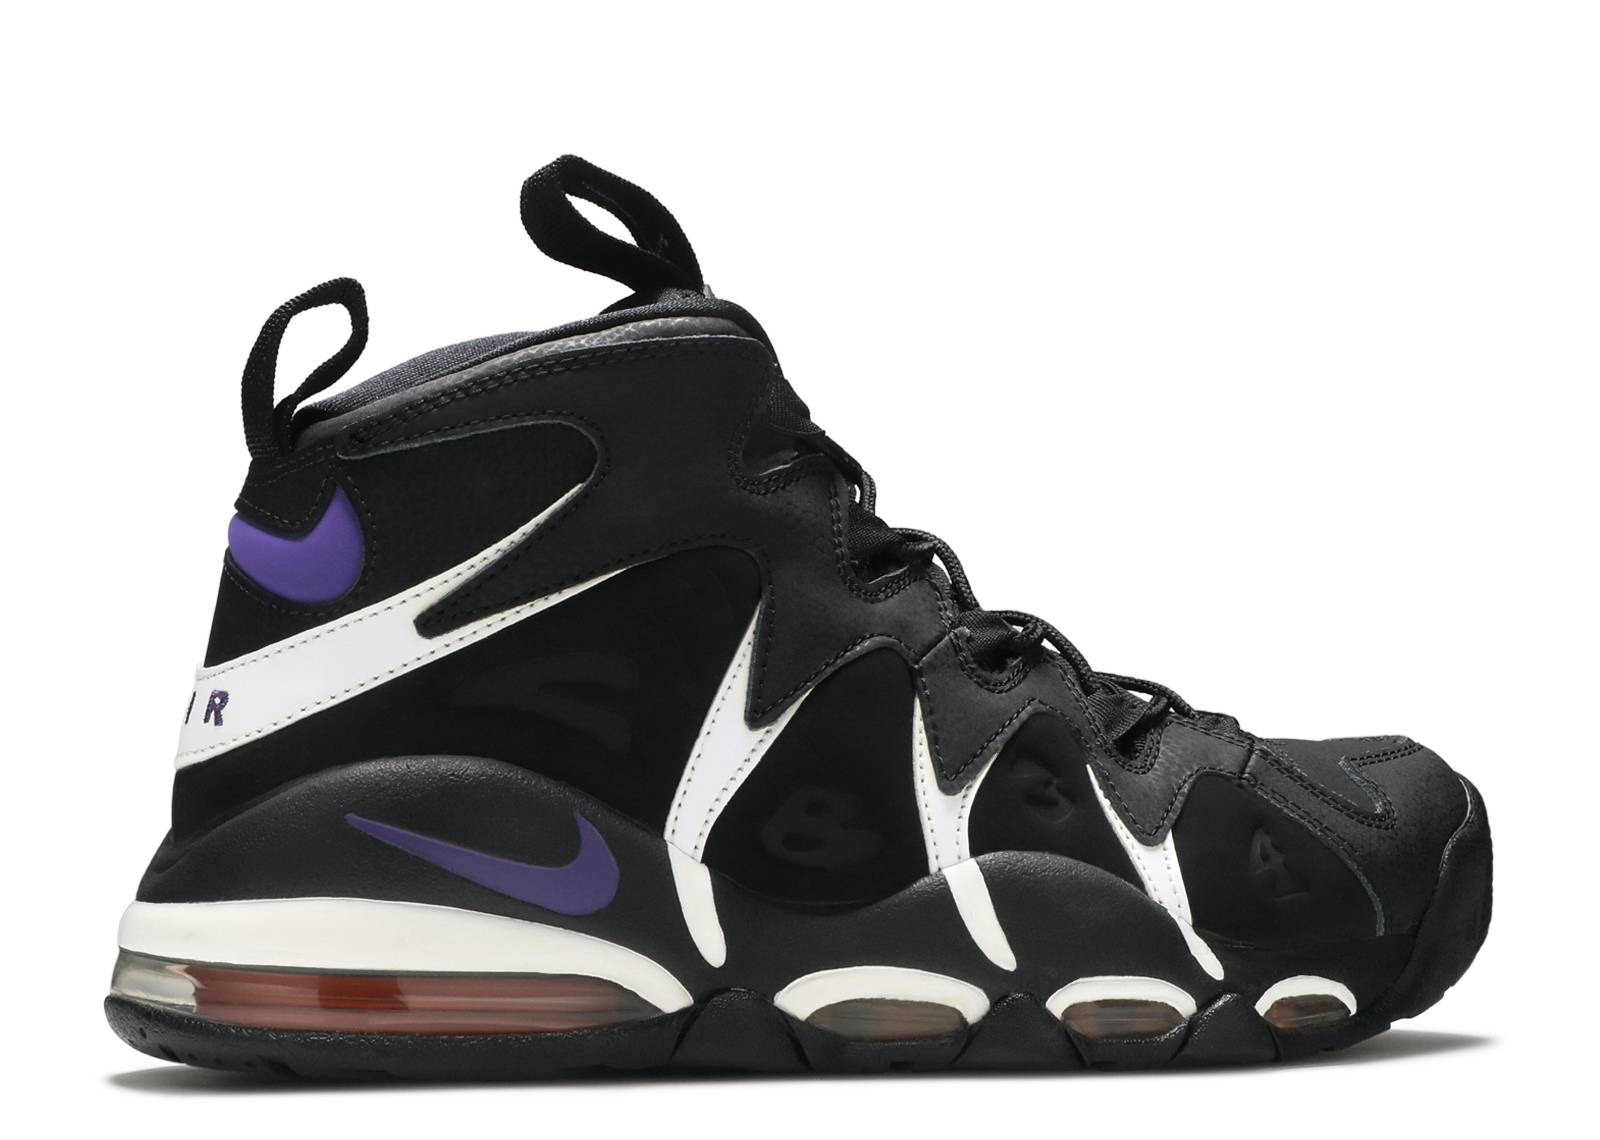 e4d8ce56682a ... italy air max cb34 nike 414243 002 black club purple tm orng blk flight  club 943bf